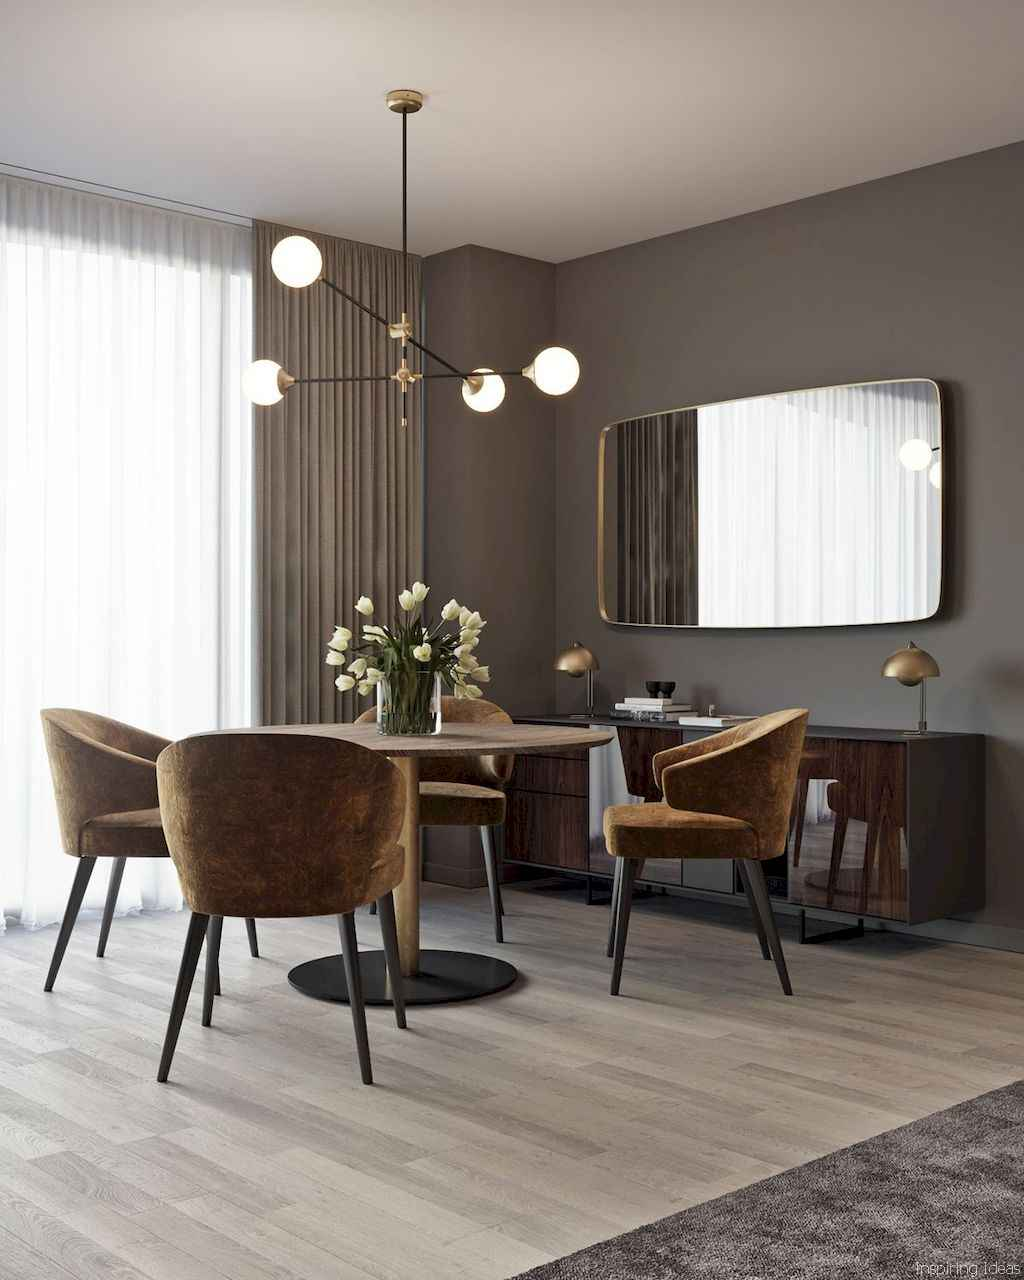 Warm Modern Home Decor | Brown Velvet Chairs | Velvet Dining Room Chairs | Velvet Dining Chairs | Dining Room Inspiration | Dining Room Ideas | Dining Room Decor | Modern Globe Chandelier Light Fixture